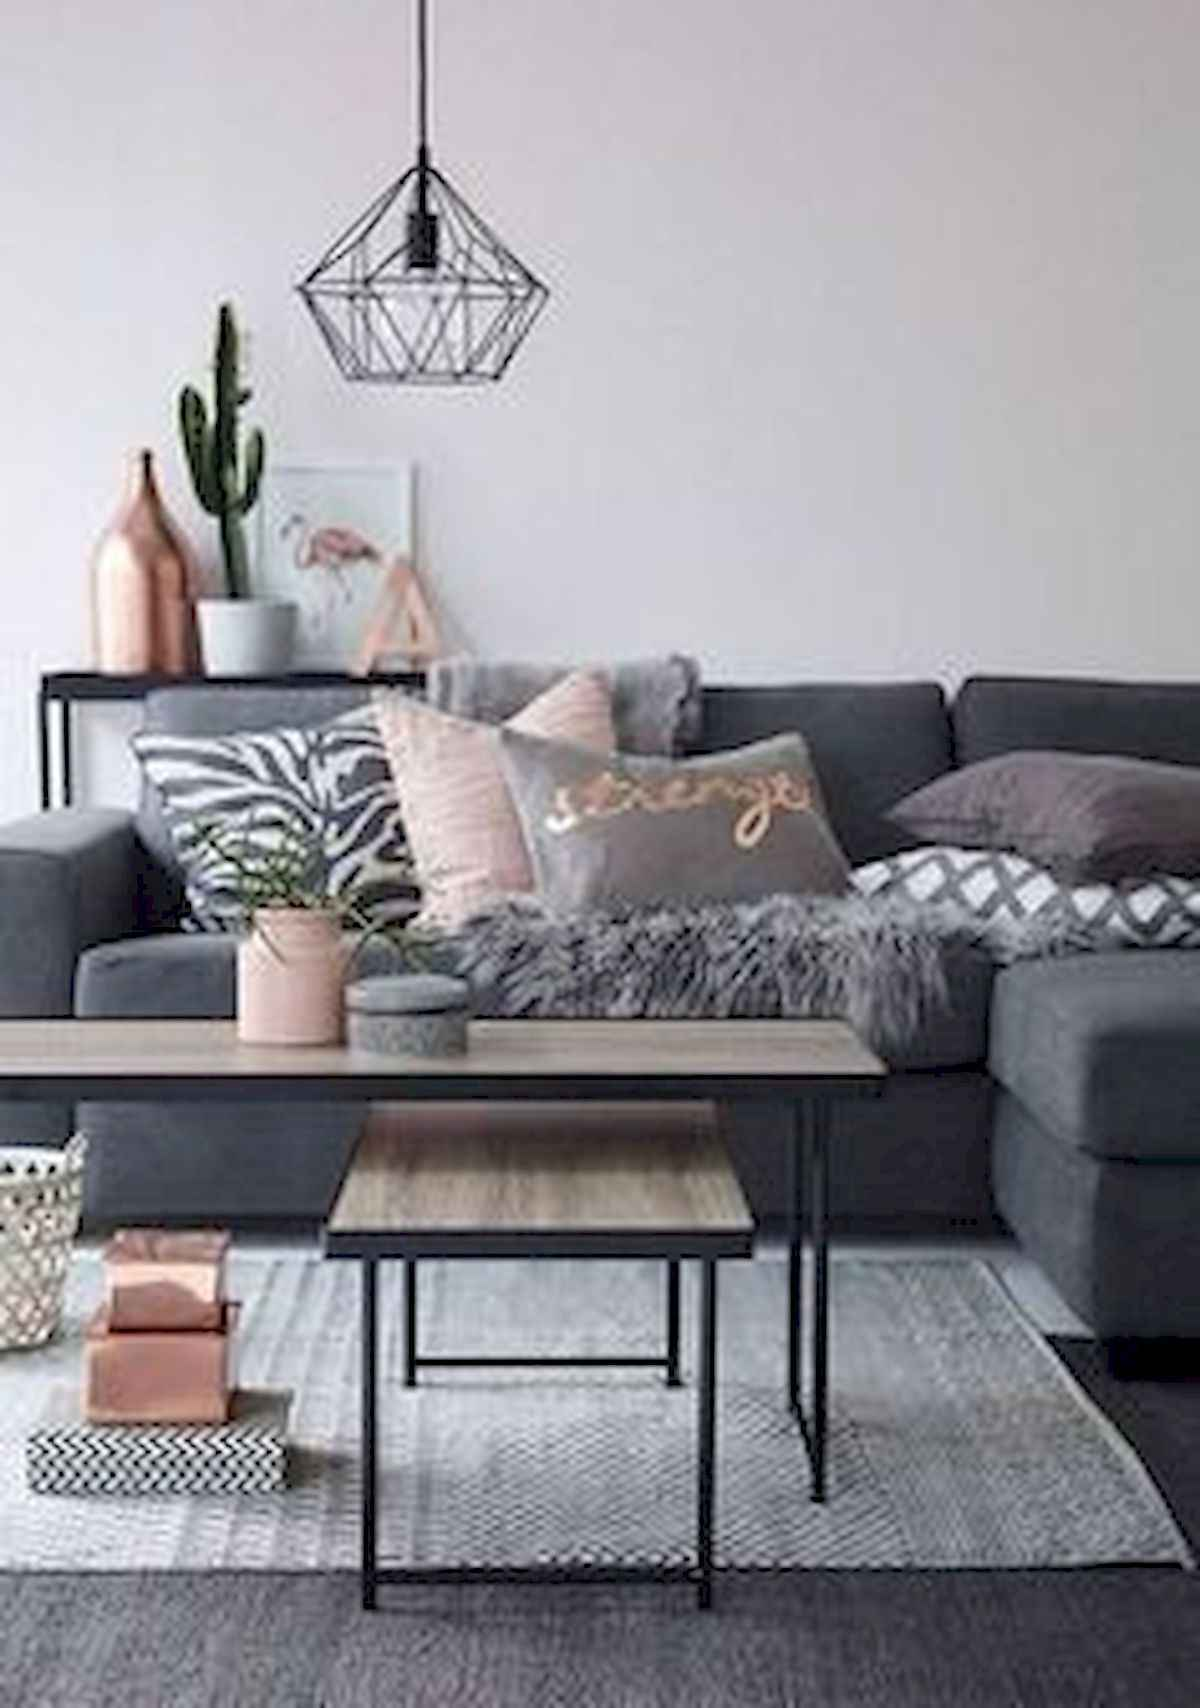 1200 1708 In 50 Genius Small Living Room Decor Ideas And Remodel For Your First Apartment